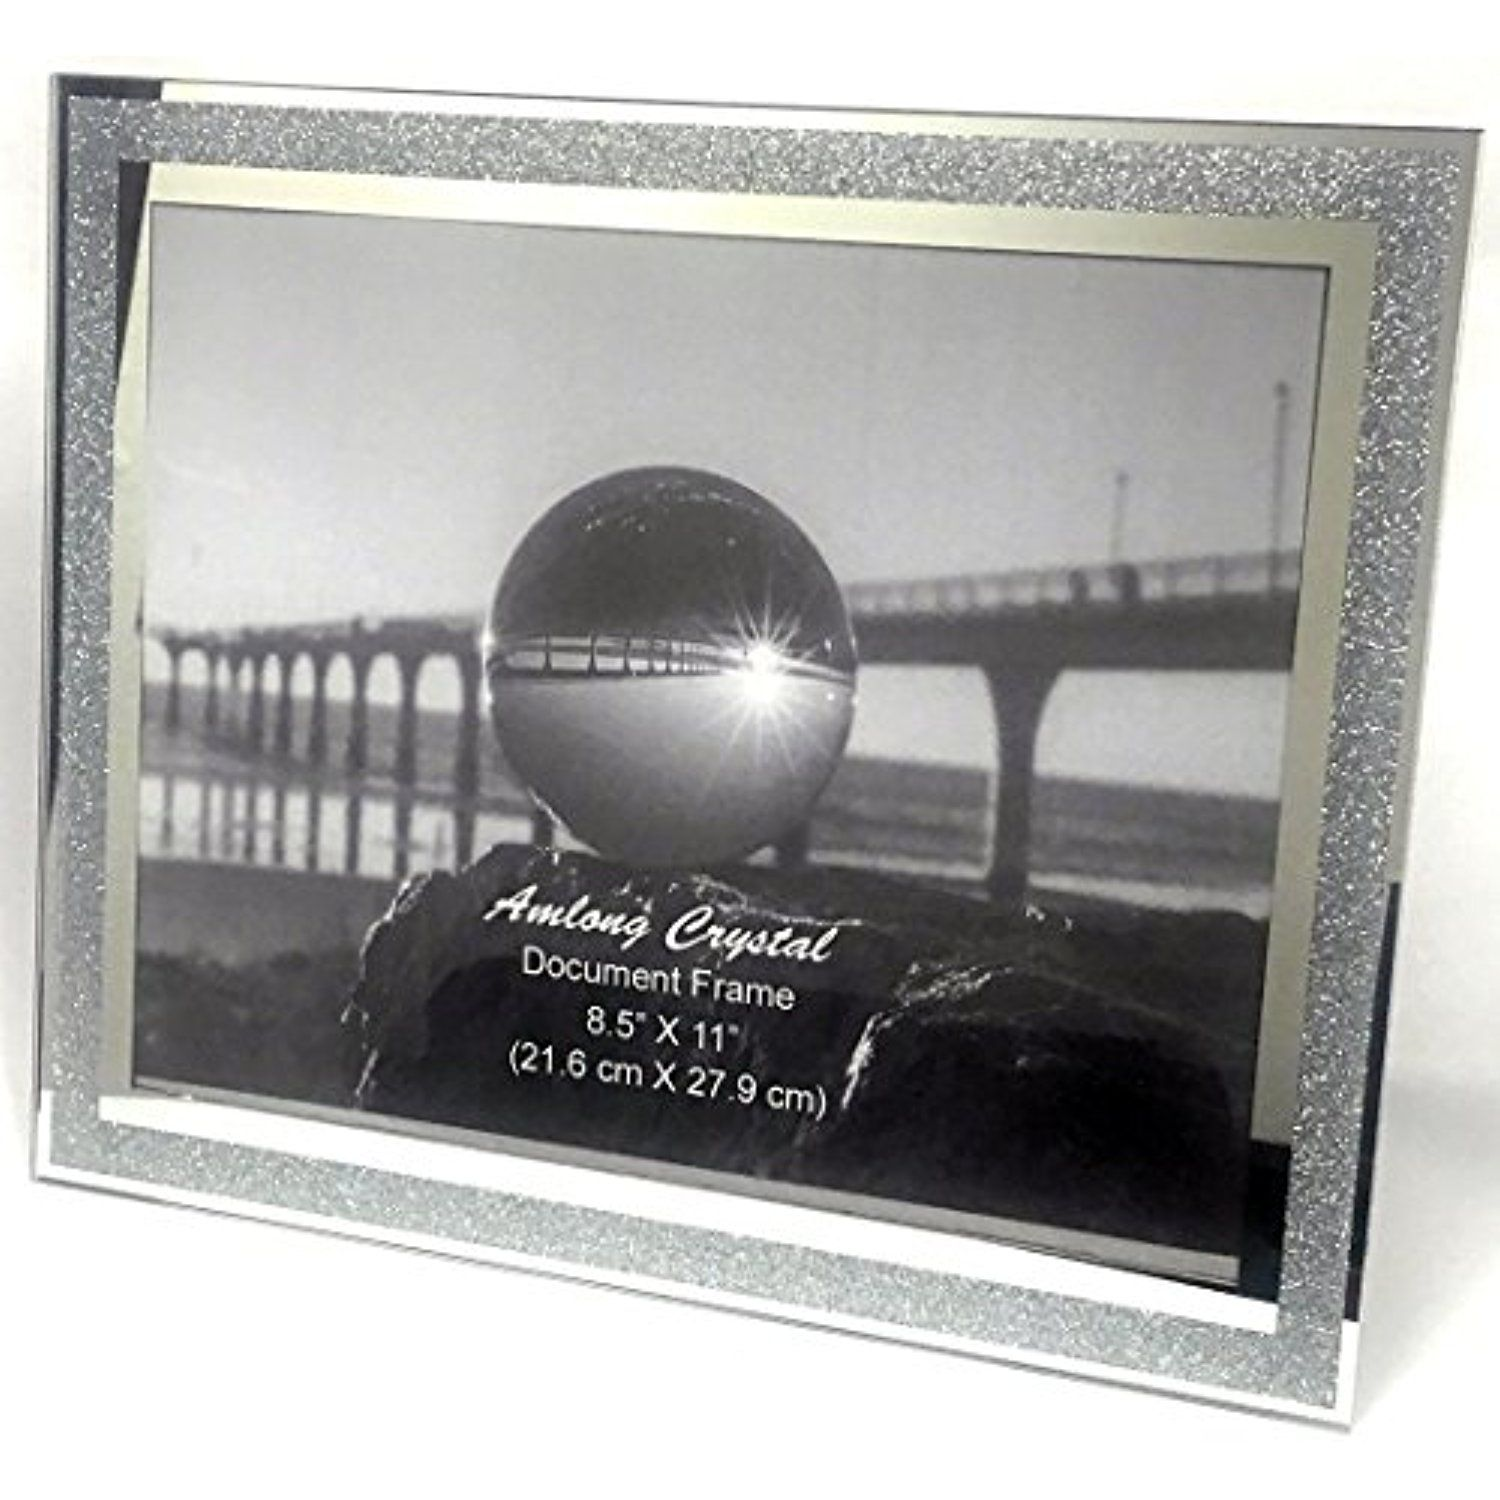 Amlong Crystal Sparkle Mirror Document Frame 8.5 x 11 Inch ...